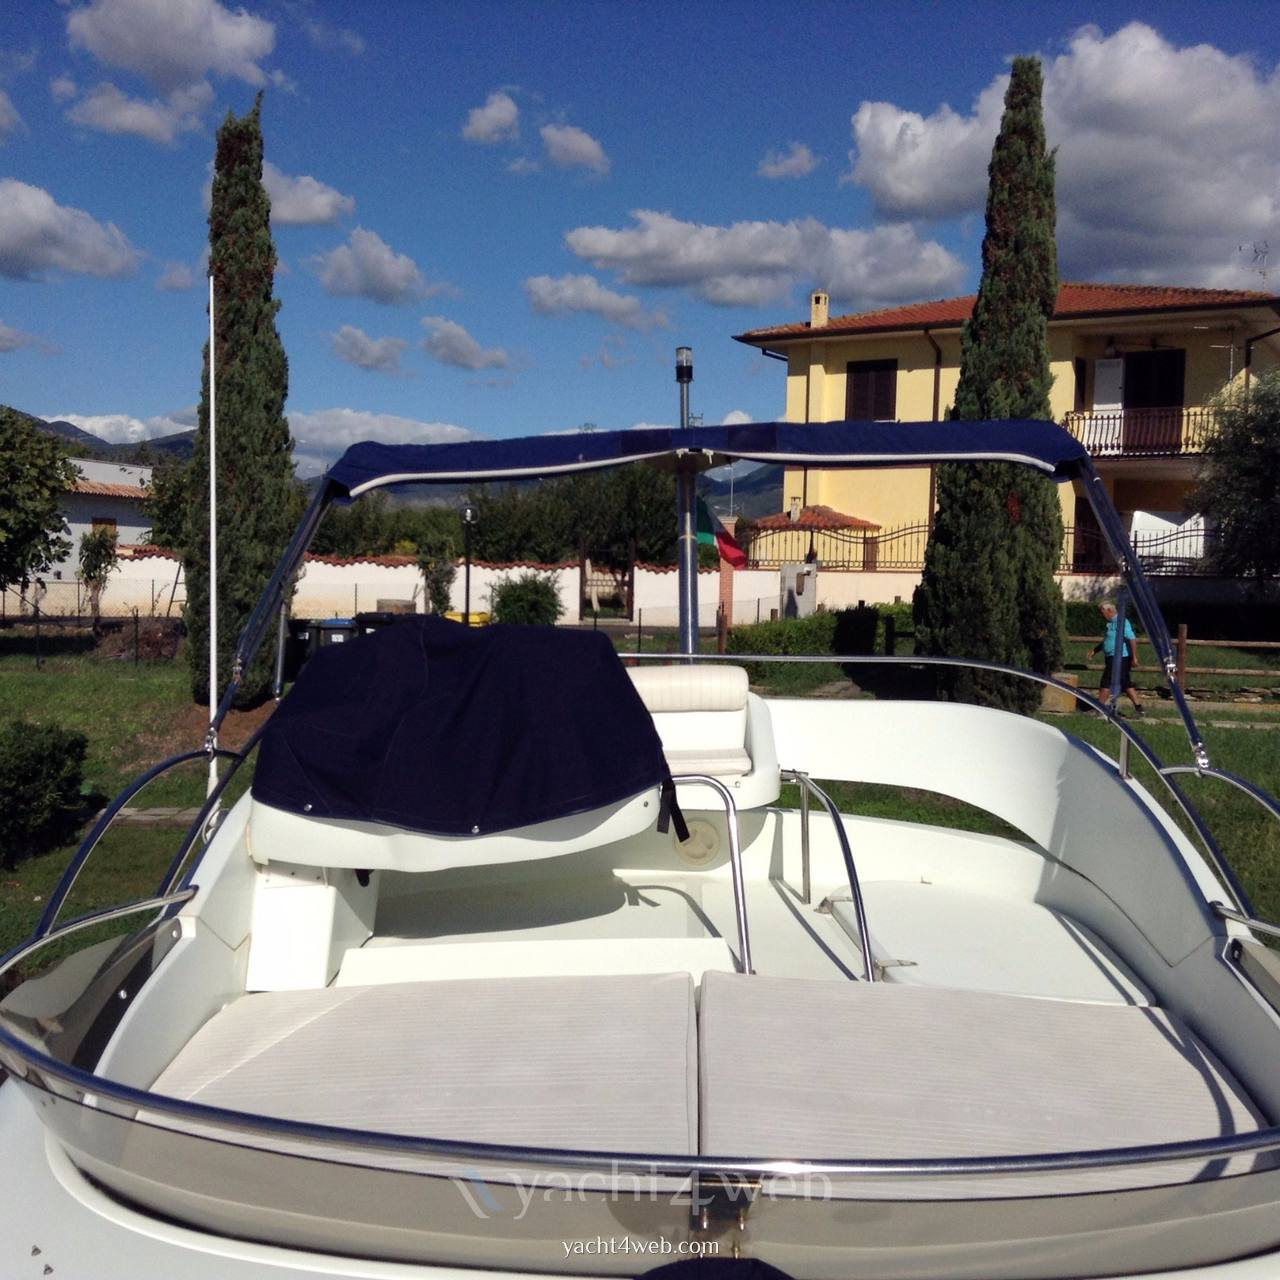 Starfisher 34 cruiser Motor boat used for sale